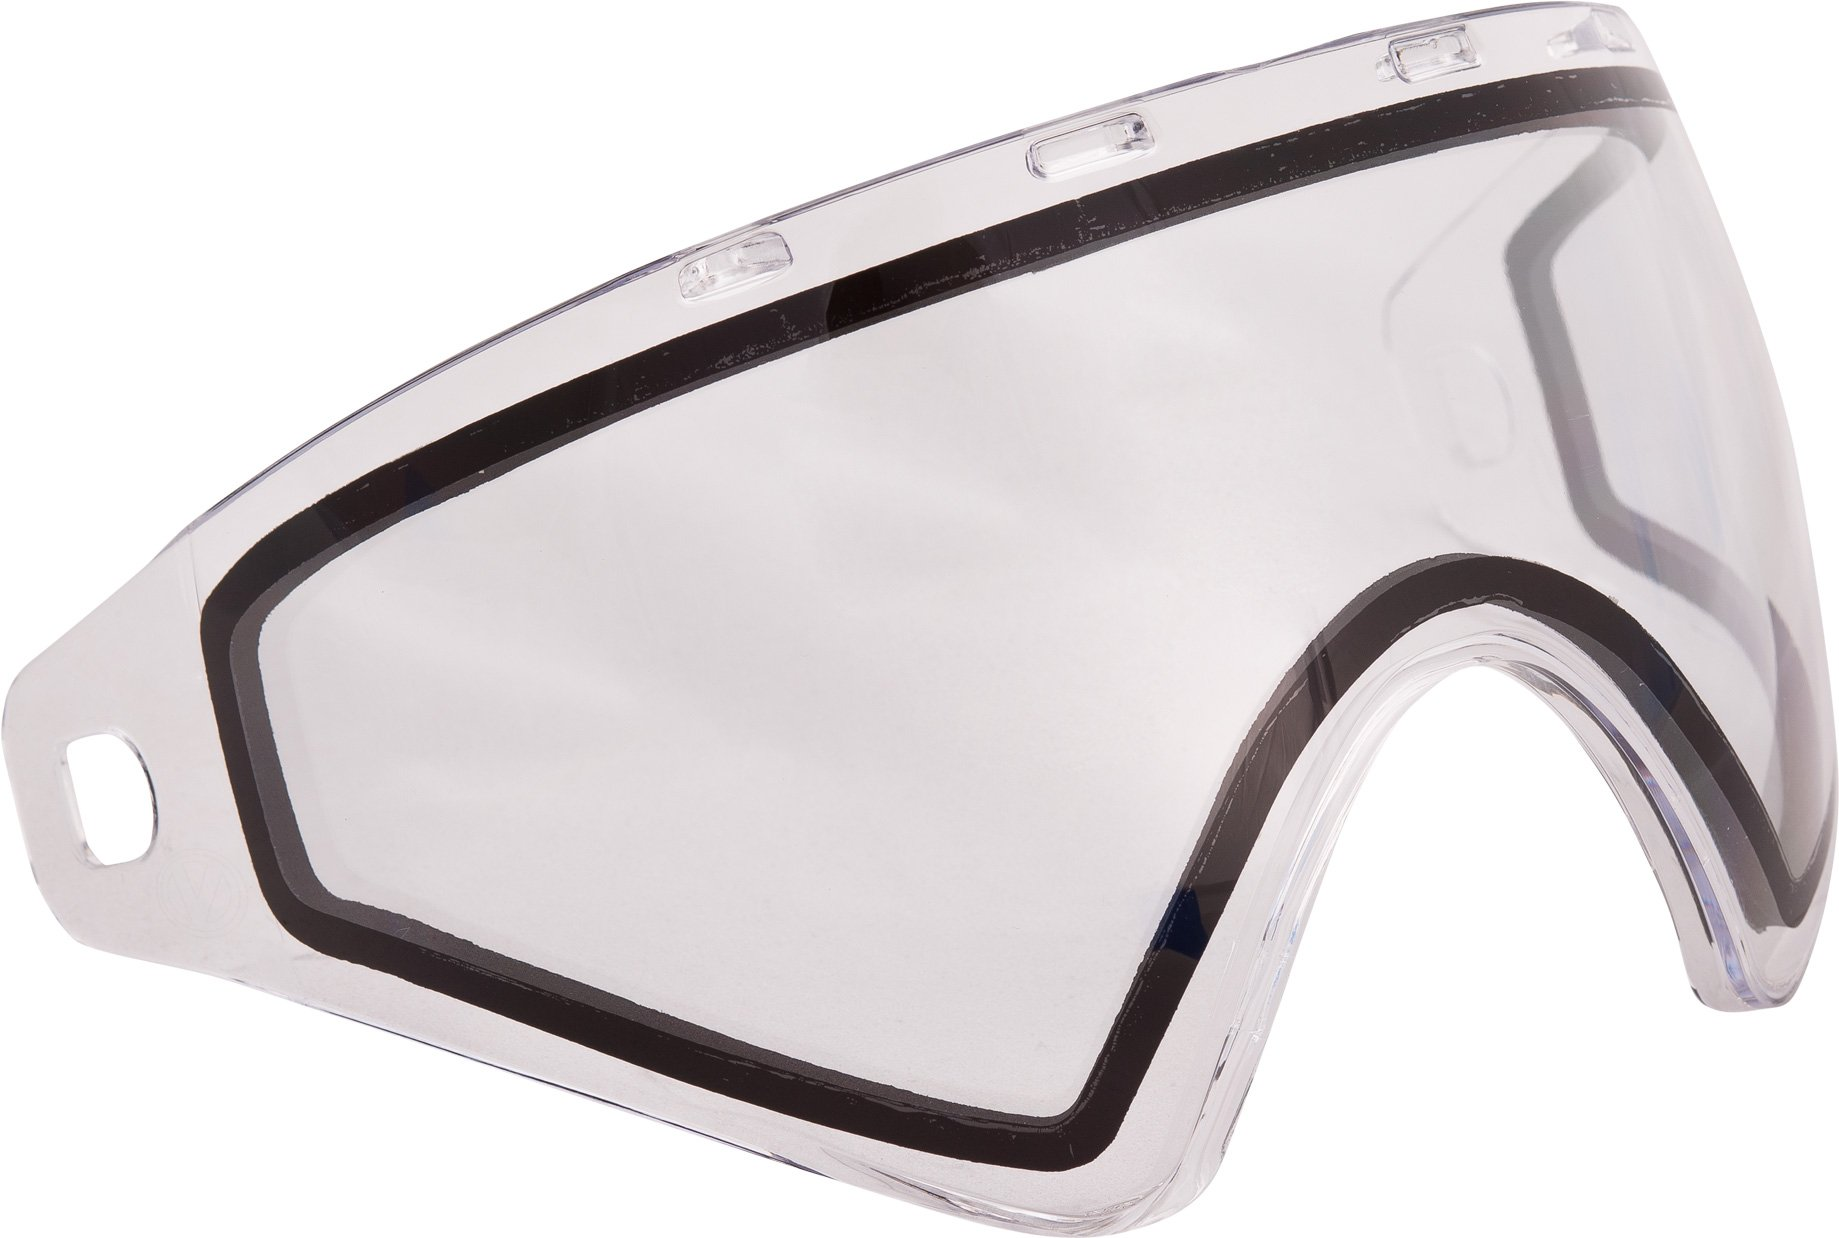 Virtue VIO Replacement Paintball Goggle Lens - Fits Ascend/Contour/Extend and XS Masks - Thermal Clear by Virtue Paintball